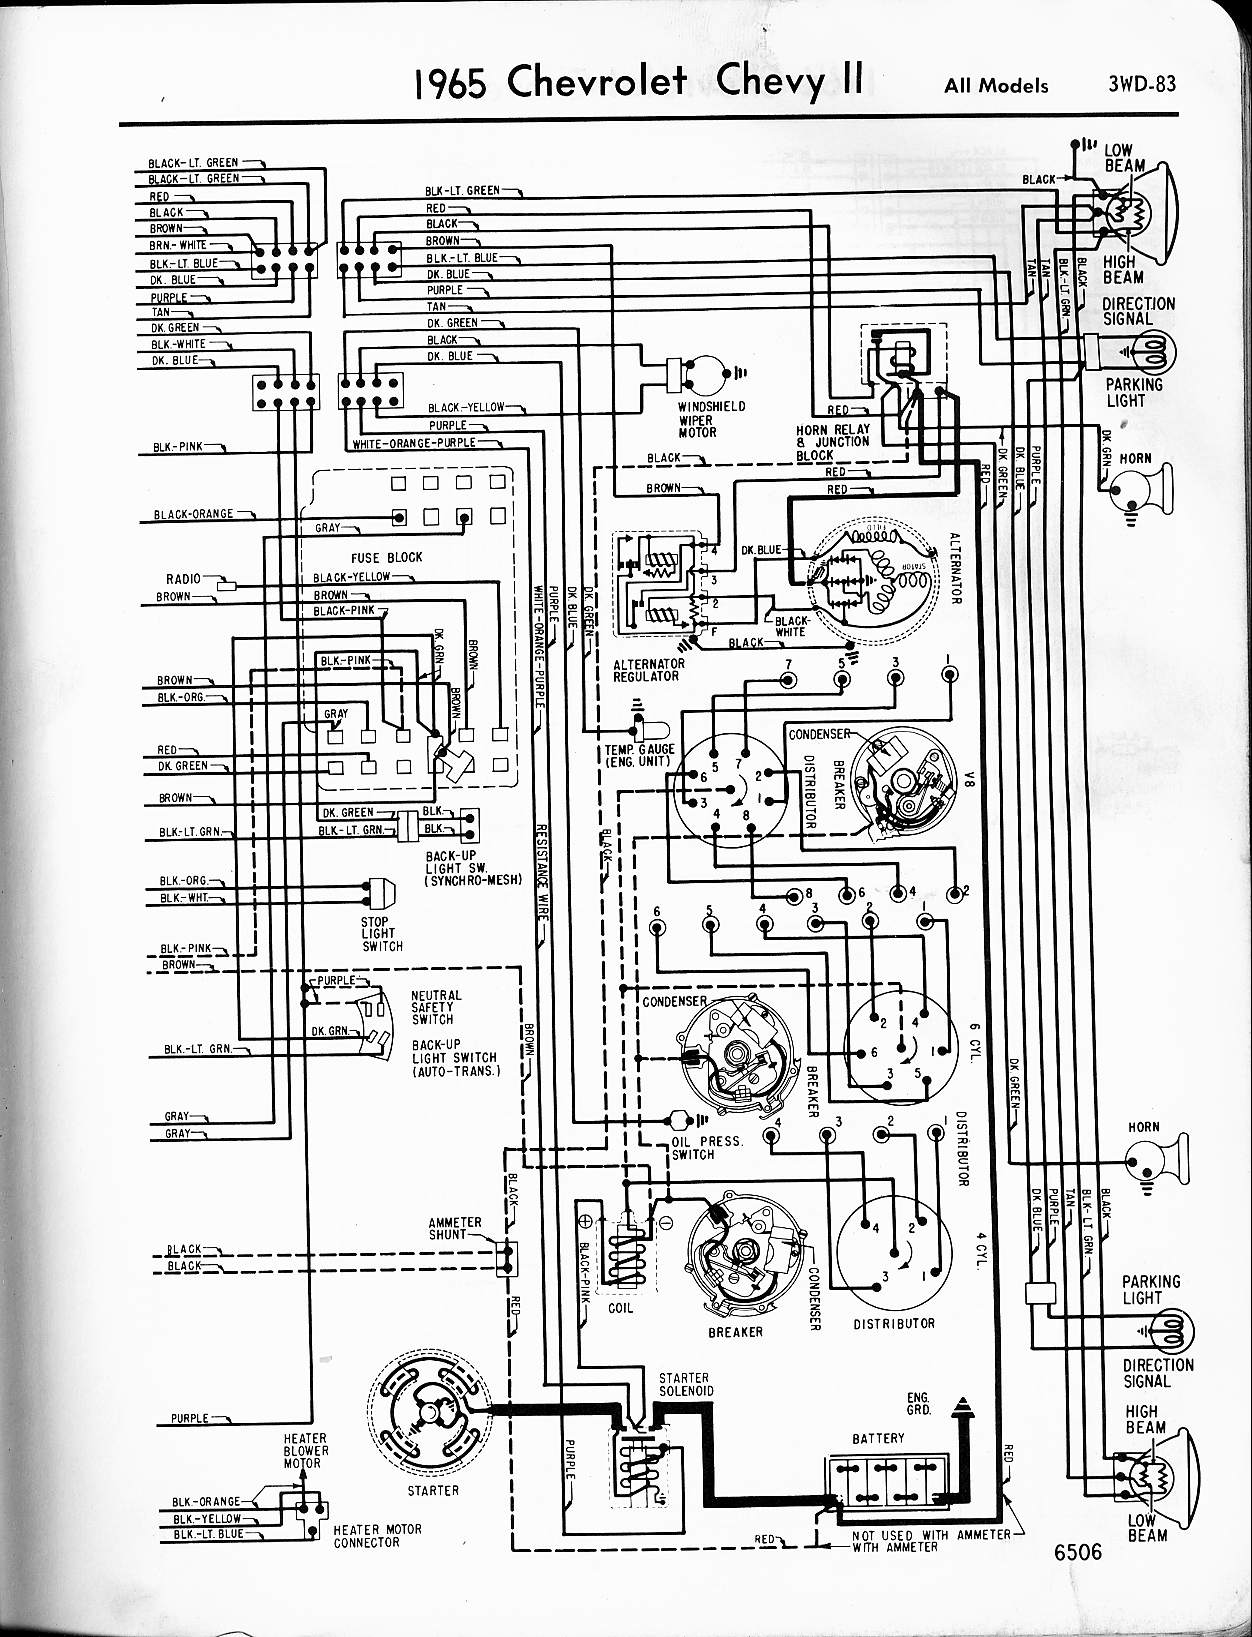 1965 el camino wiring diagram online schematic diagram u2022 rh holyoak co 1970 chevrolet wiring diagram 1970 chevy c20 wiring diagram